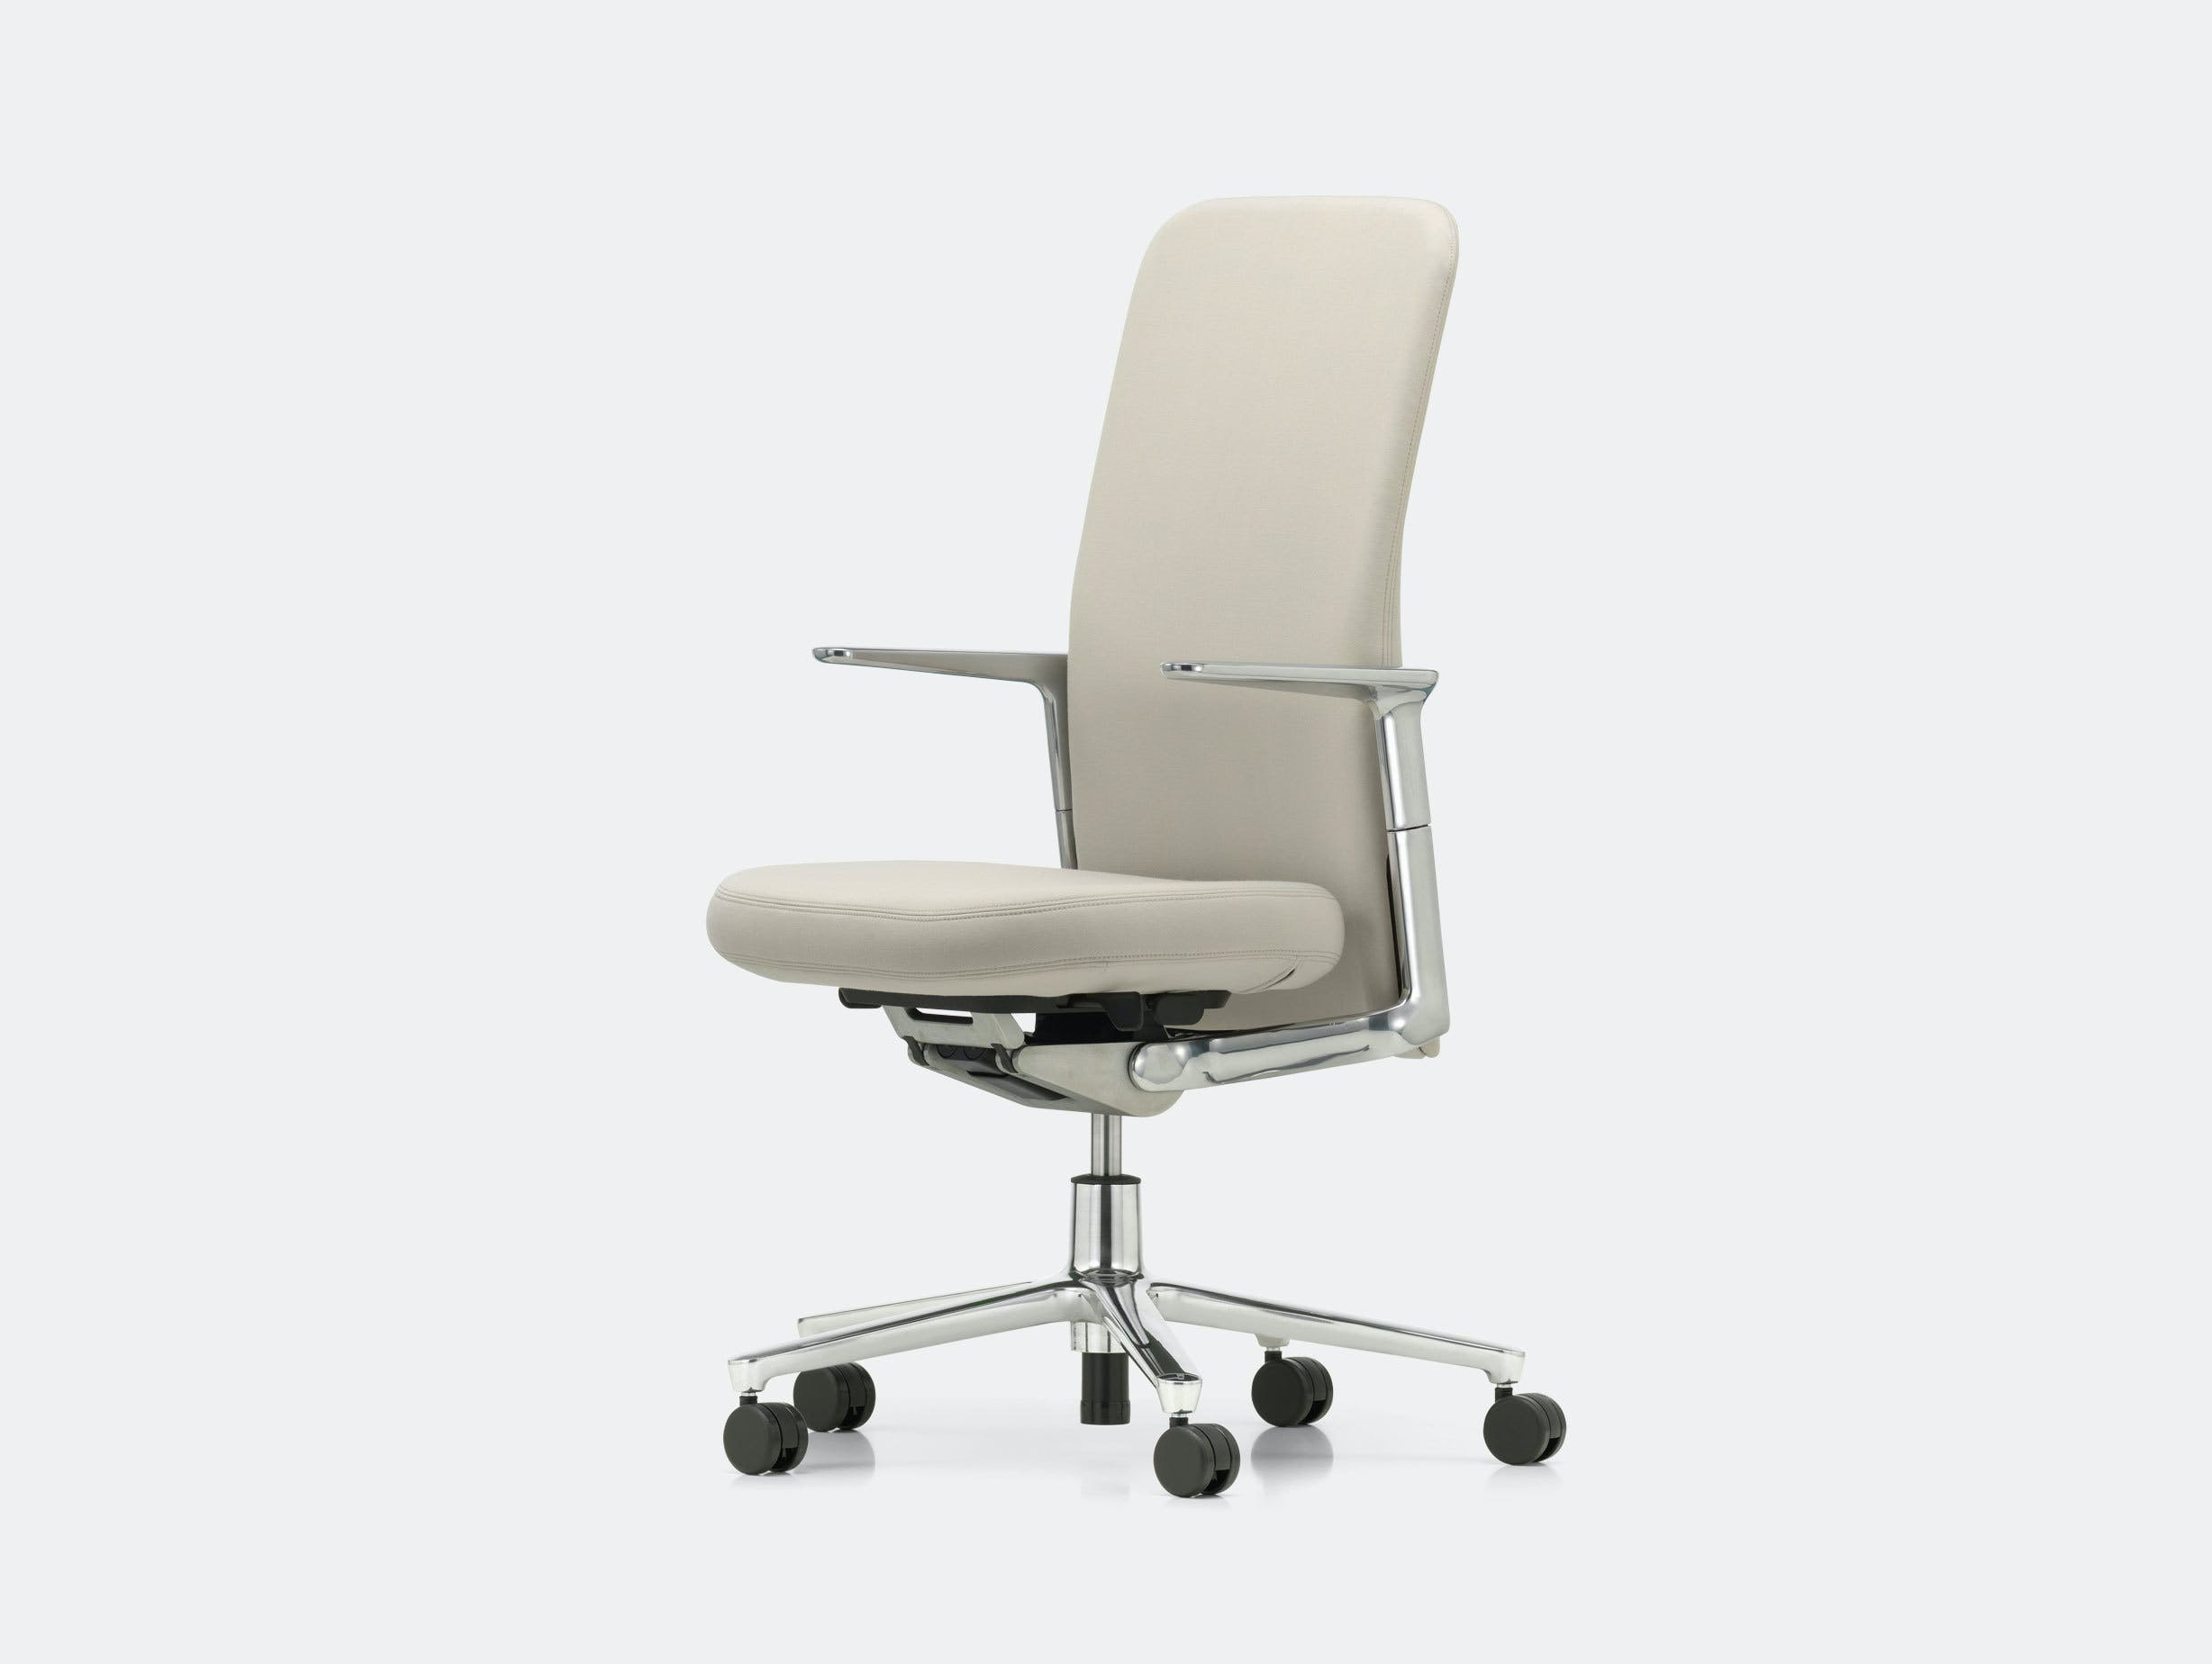 Vitra Pacific Chair Pearl Edward Barber Jay Osgerby